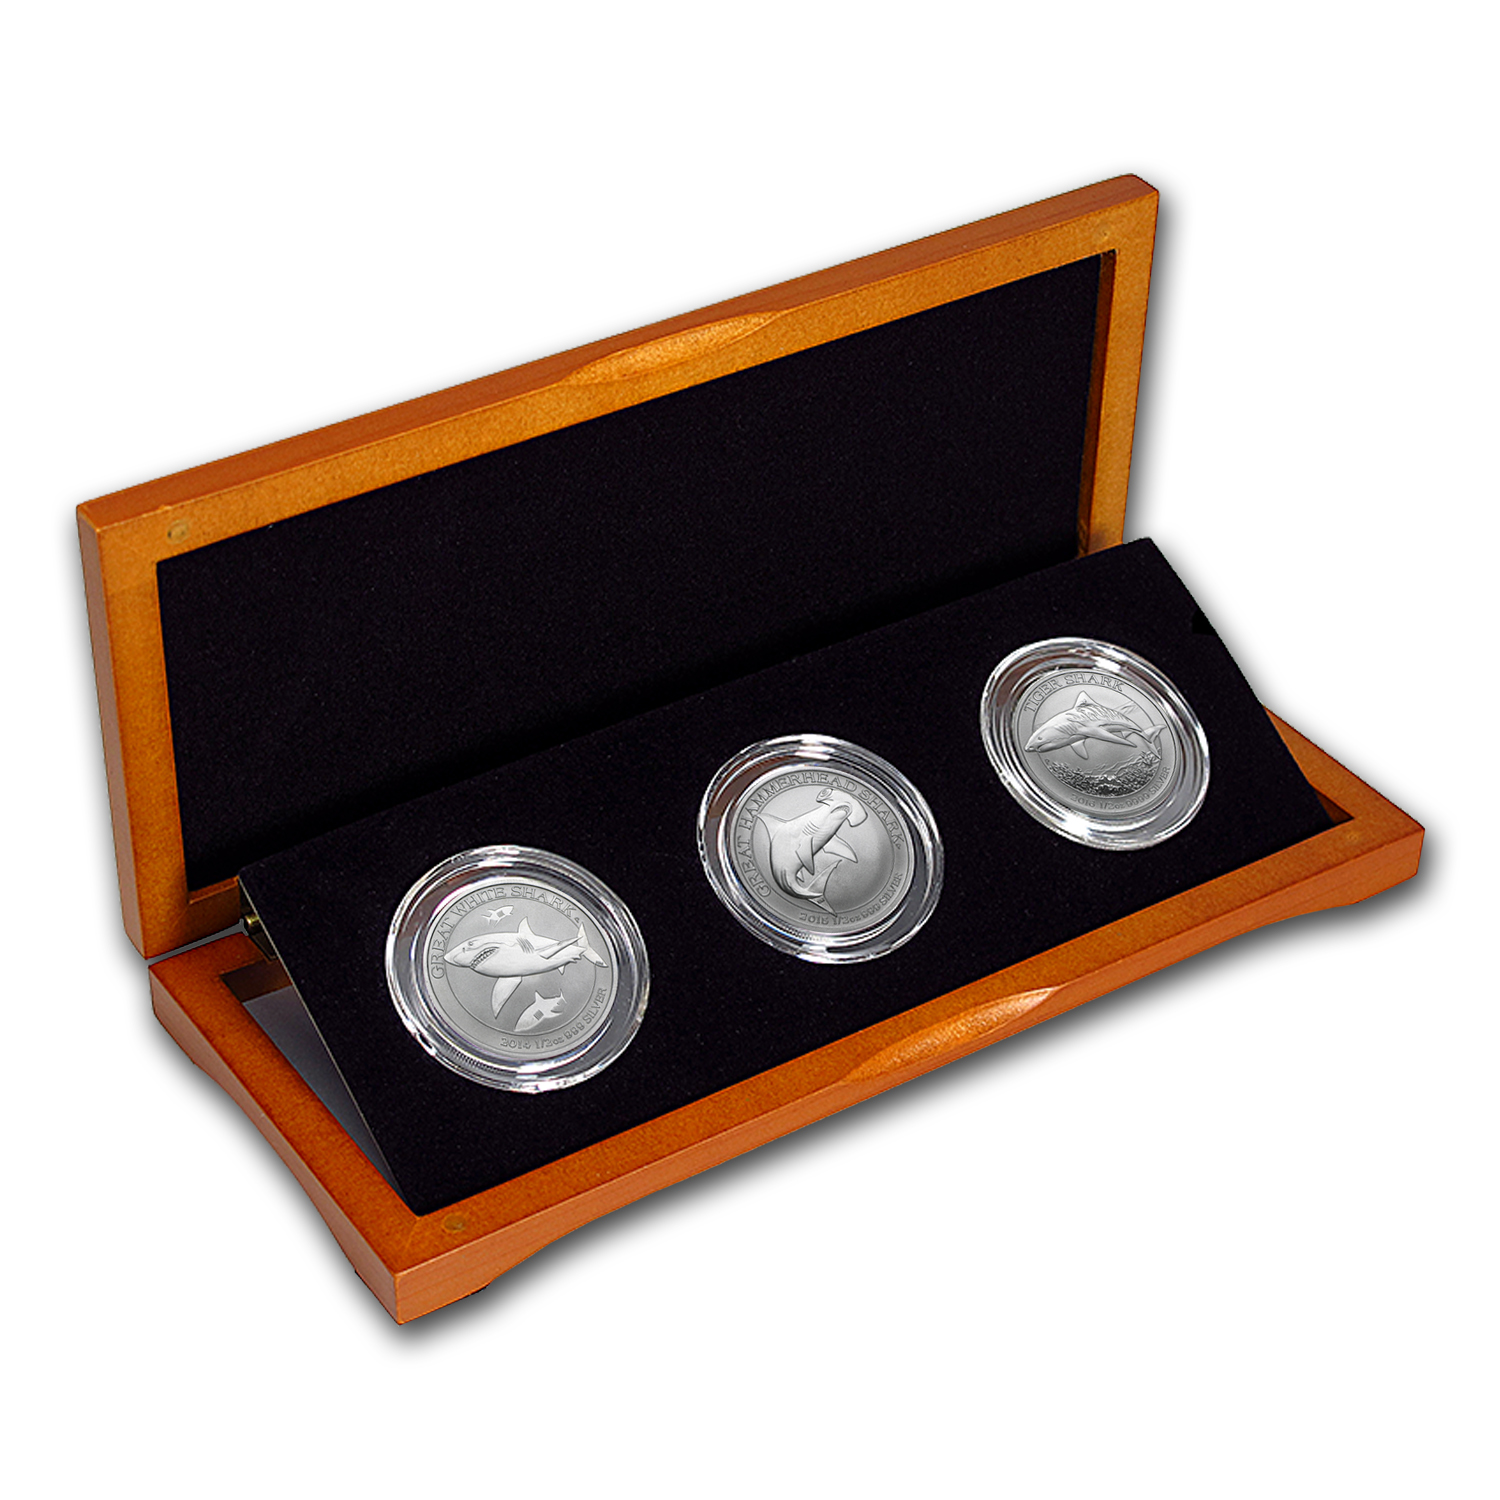 2014-2016 Australia 1/2 oz Silver Shark Series 3-Coin Set (BU)